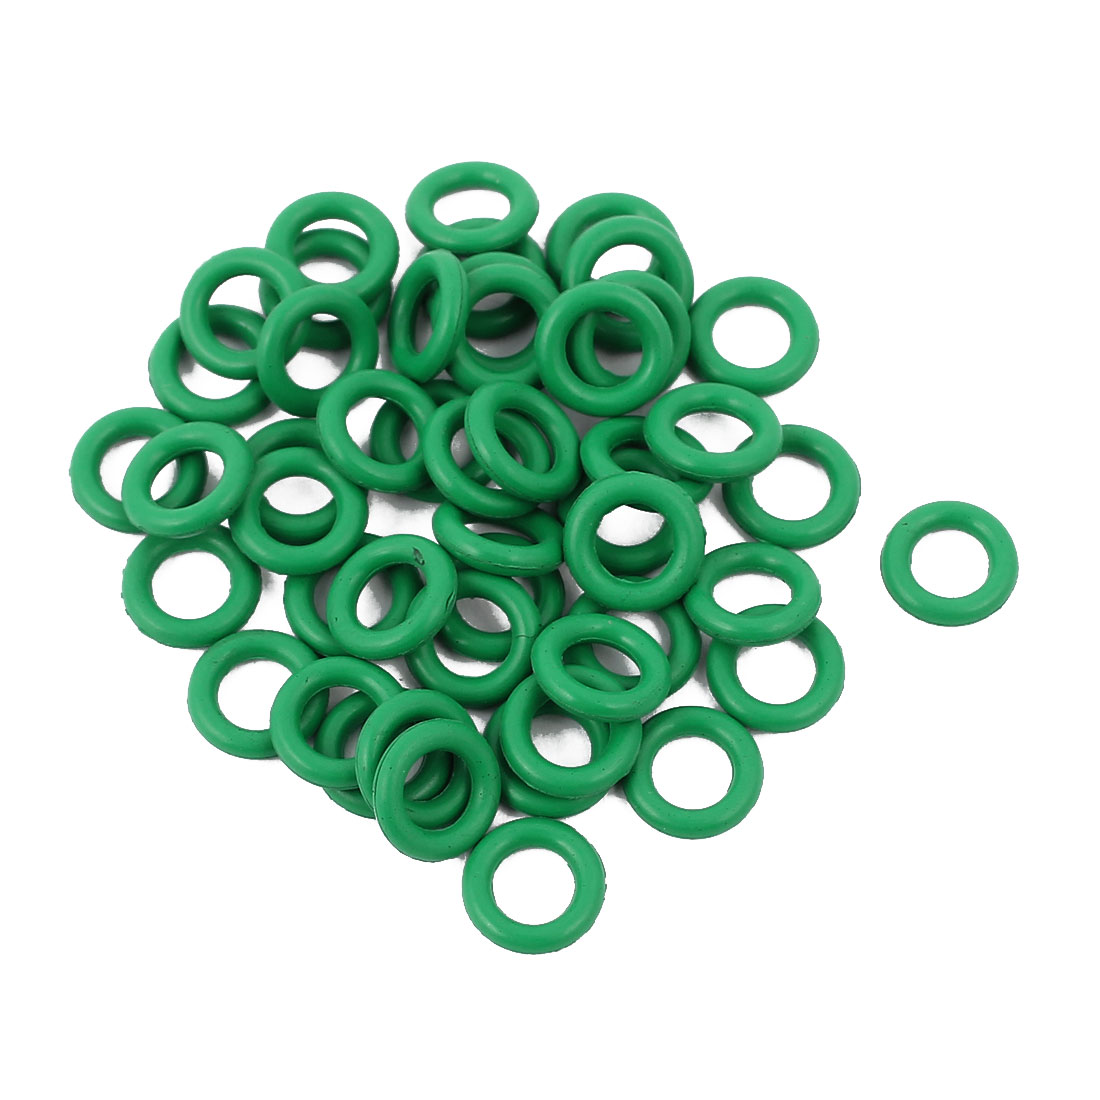 50pcs 1.5mm Thick Heat Resistant Mini Green O-Ring Rubber Sealing Ring 7mm OD - image 2 of 2